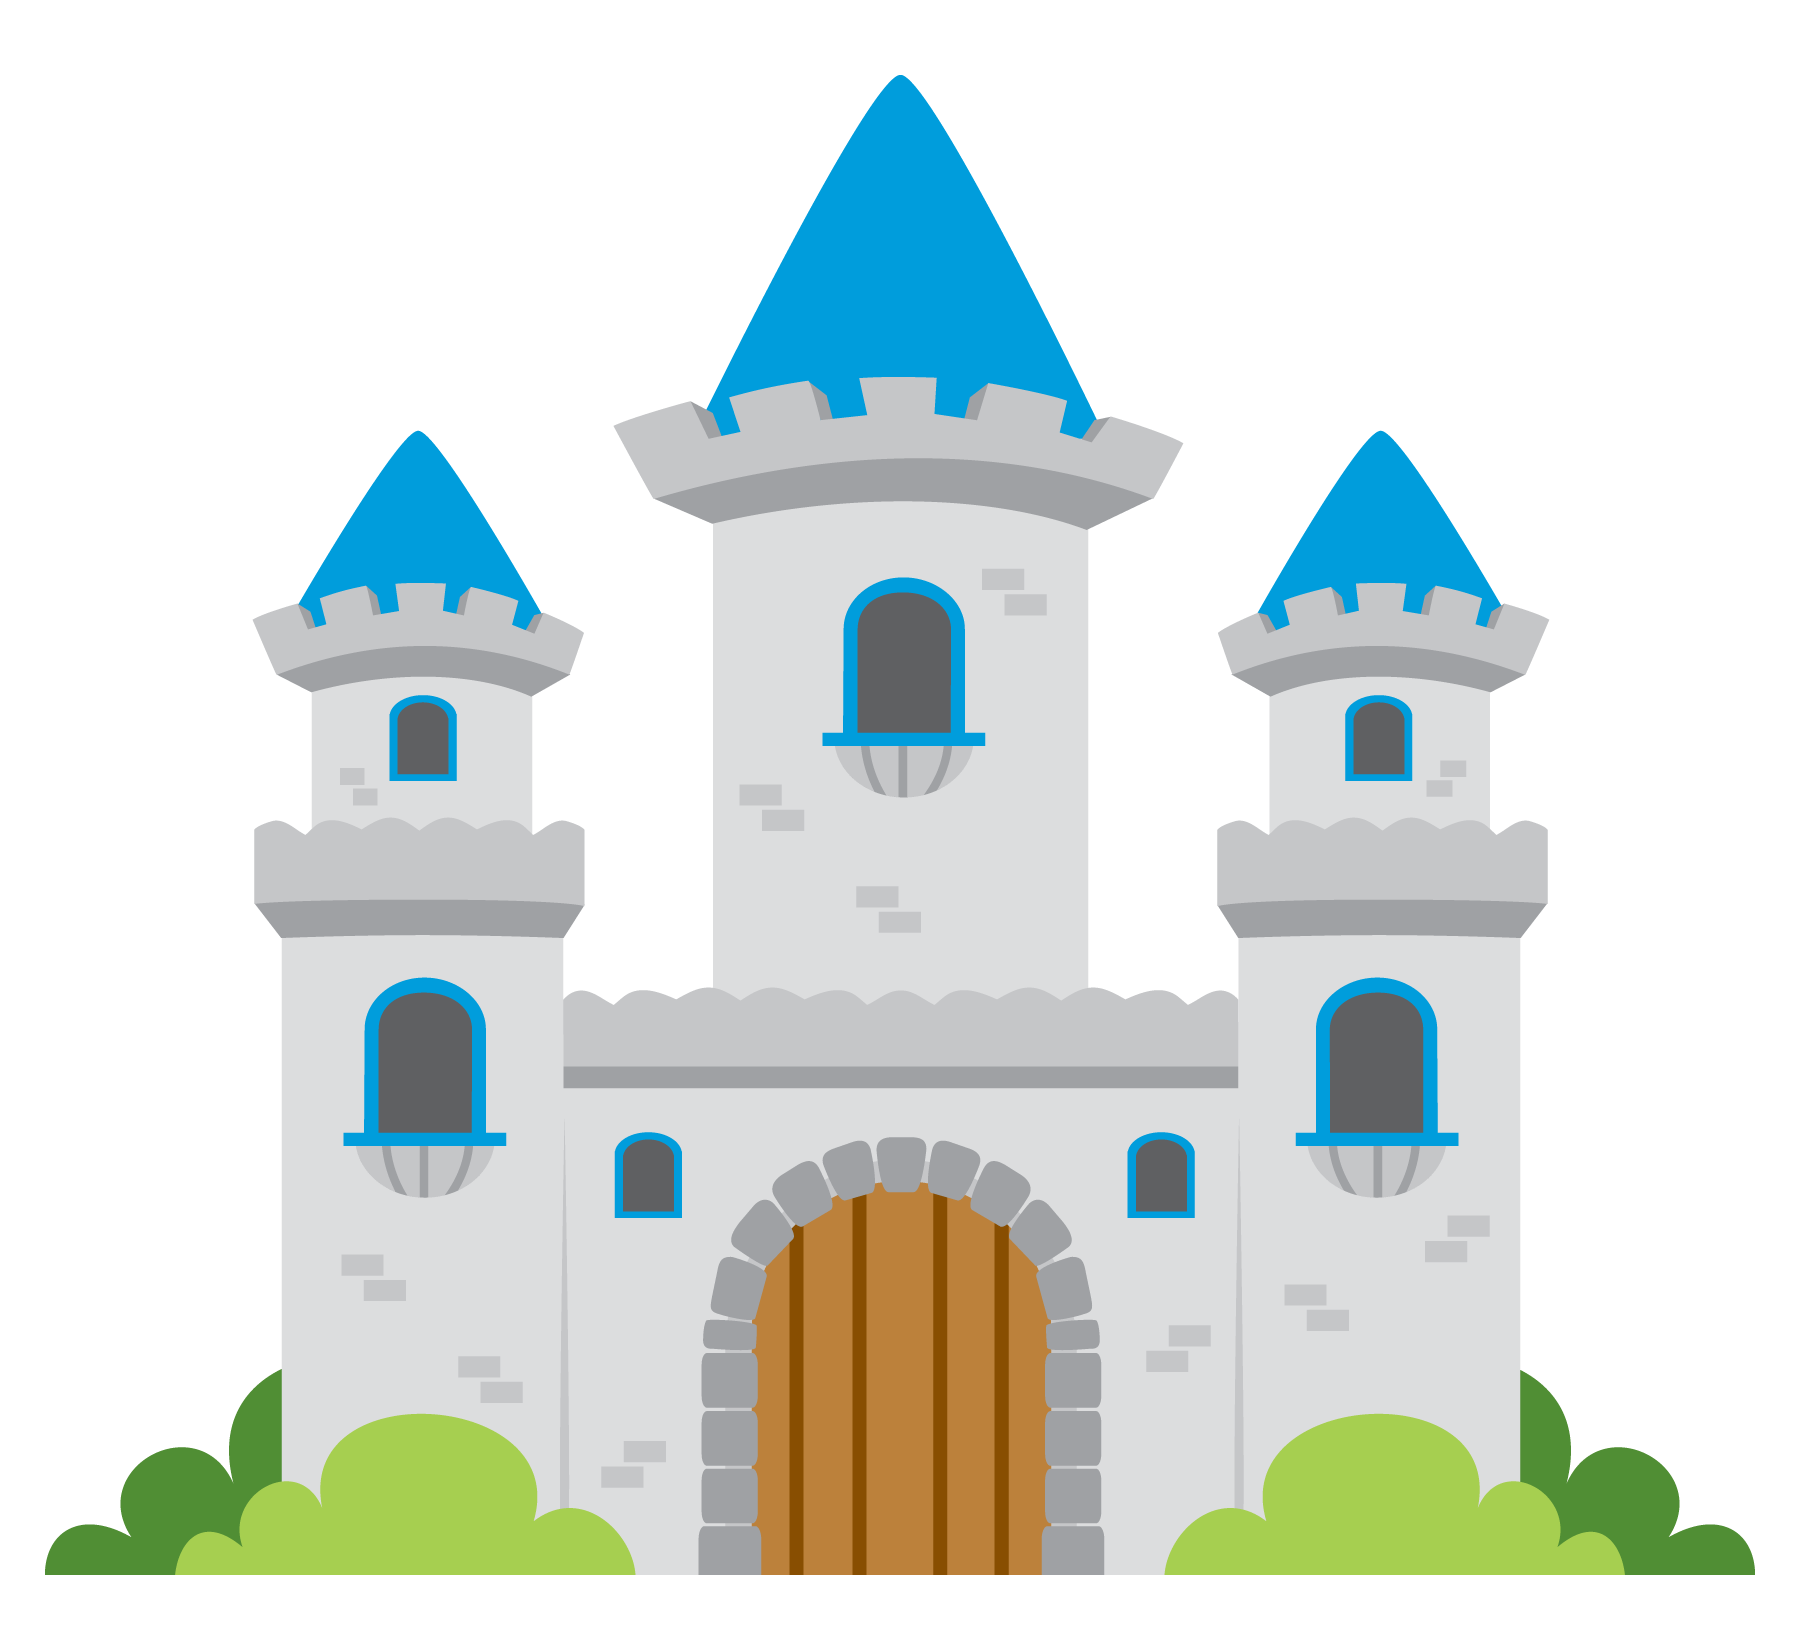 fairy tale castle clip art use these free images for your websites rh pinterest com fairy tale clip art teachers fairy tale clip art teachers